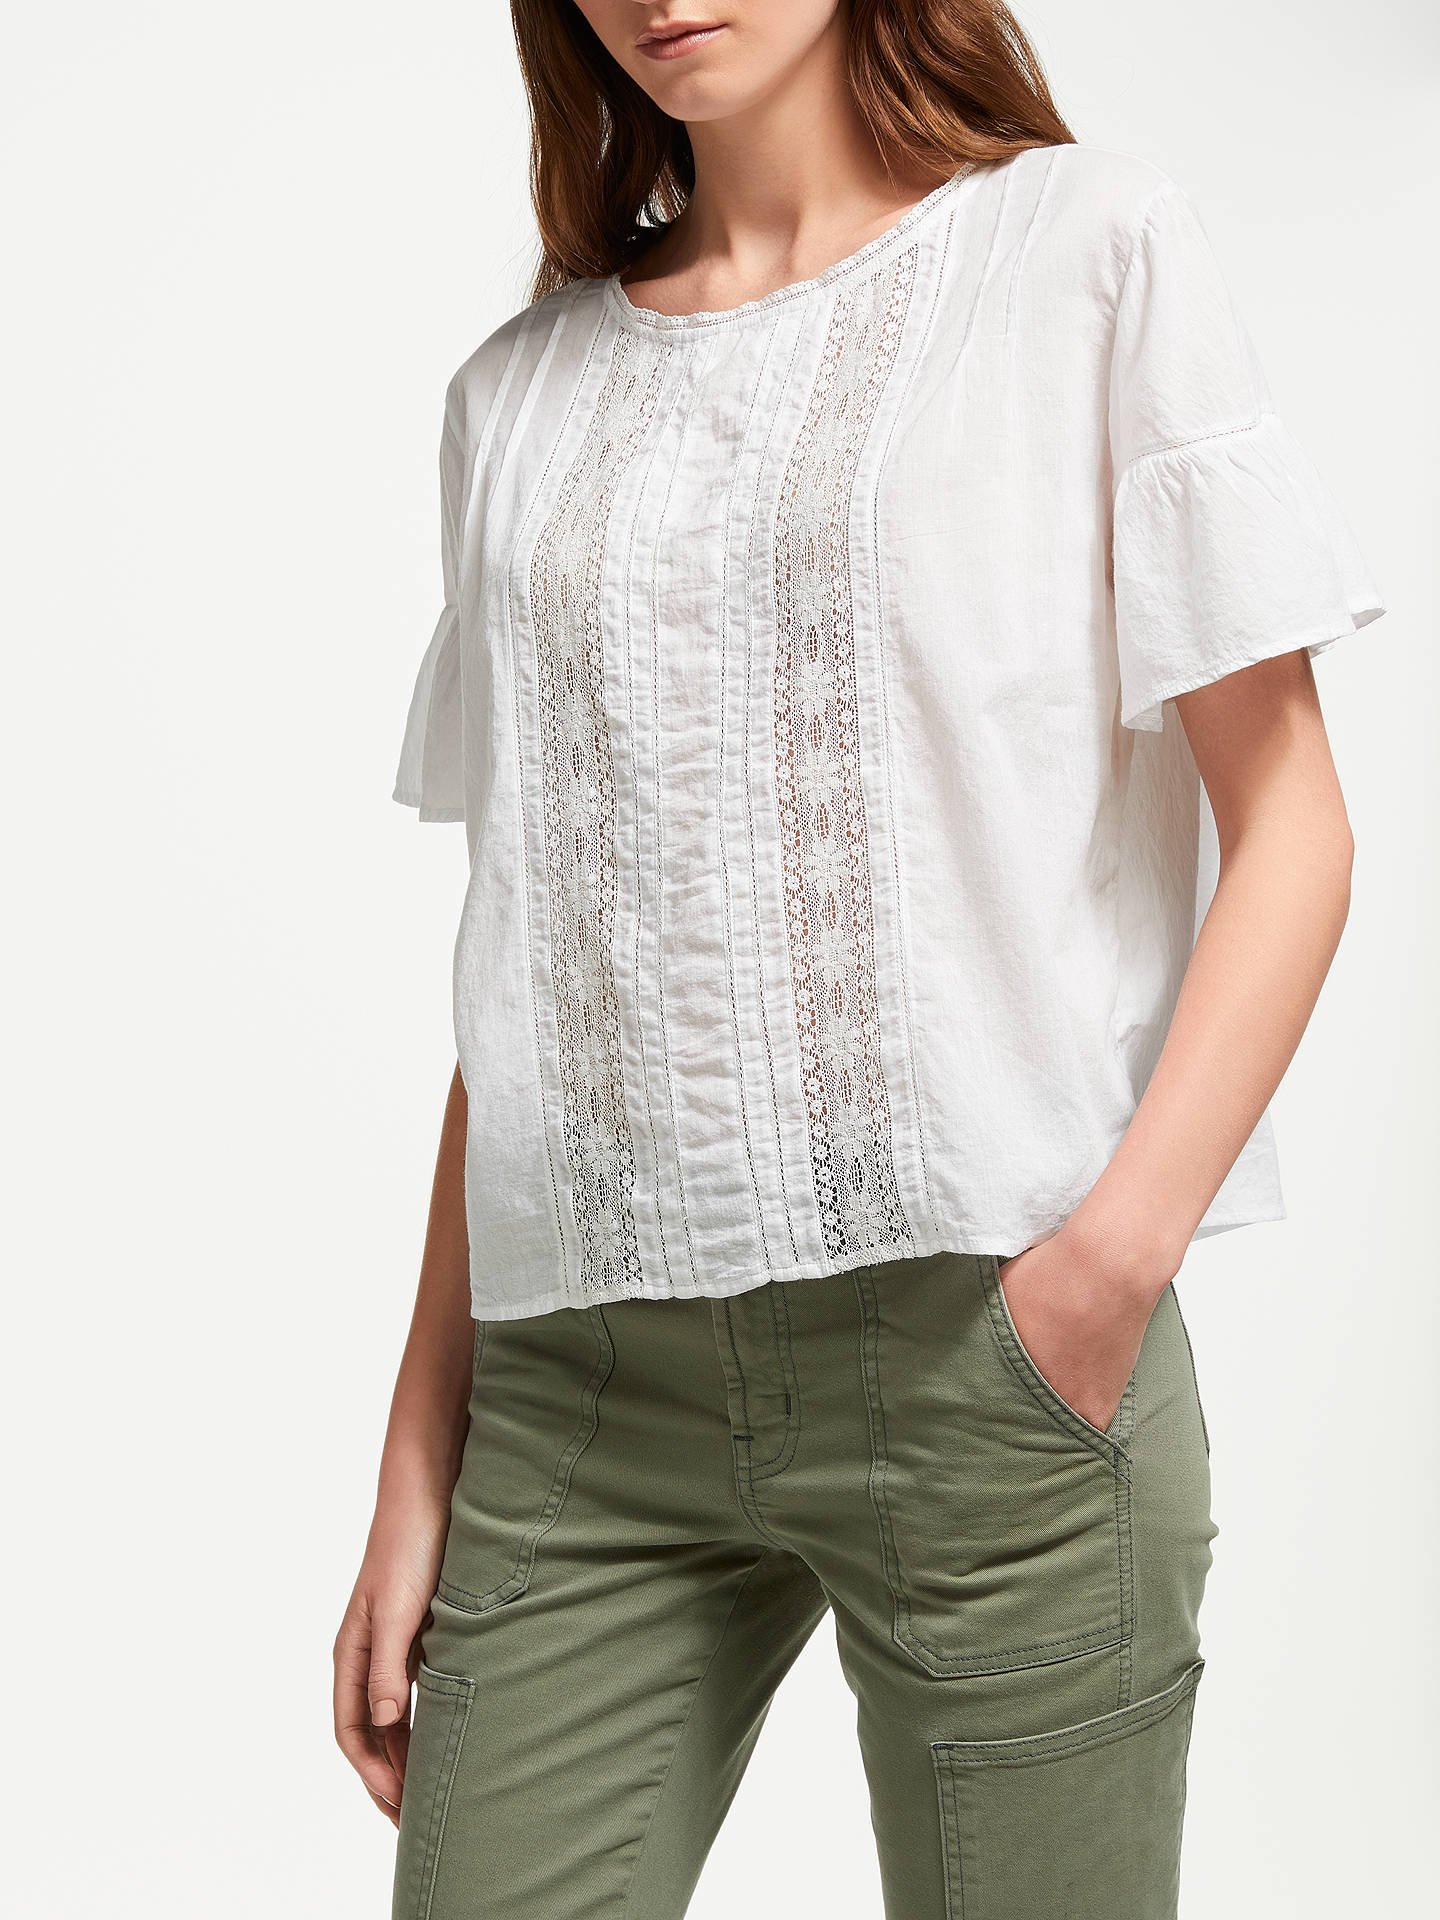 BuyVelvet by Graham & Spencer Sheri Top, White, XS Online at johnlewis.com